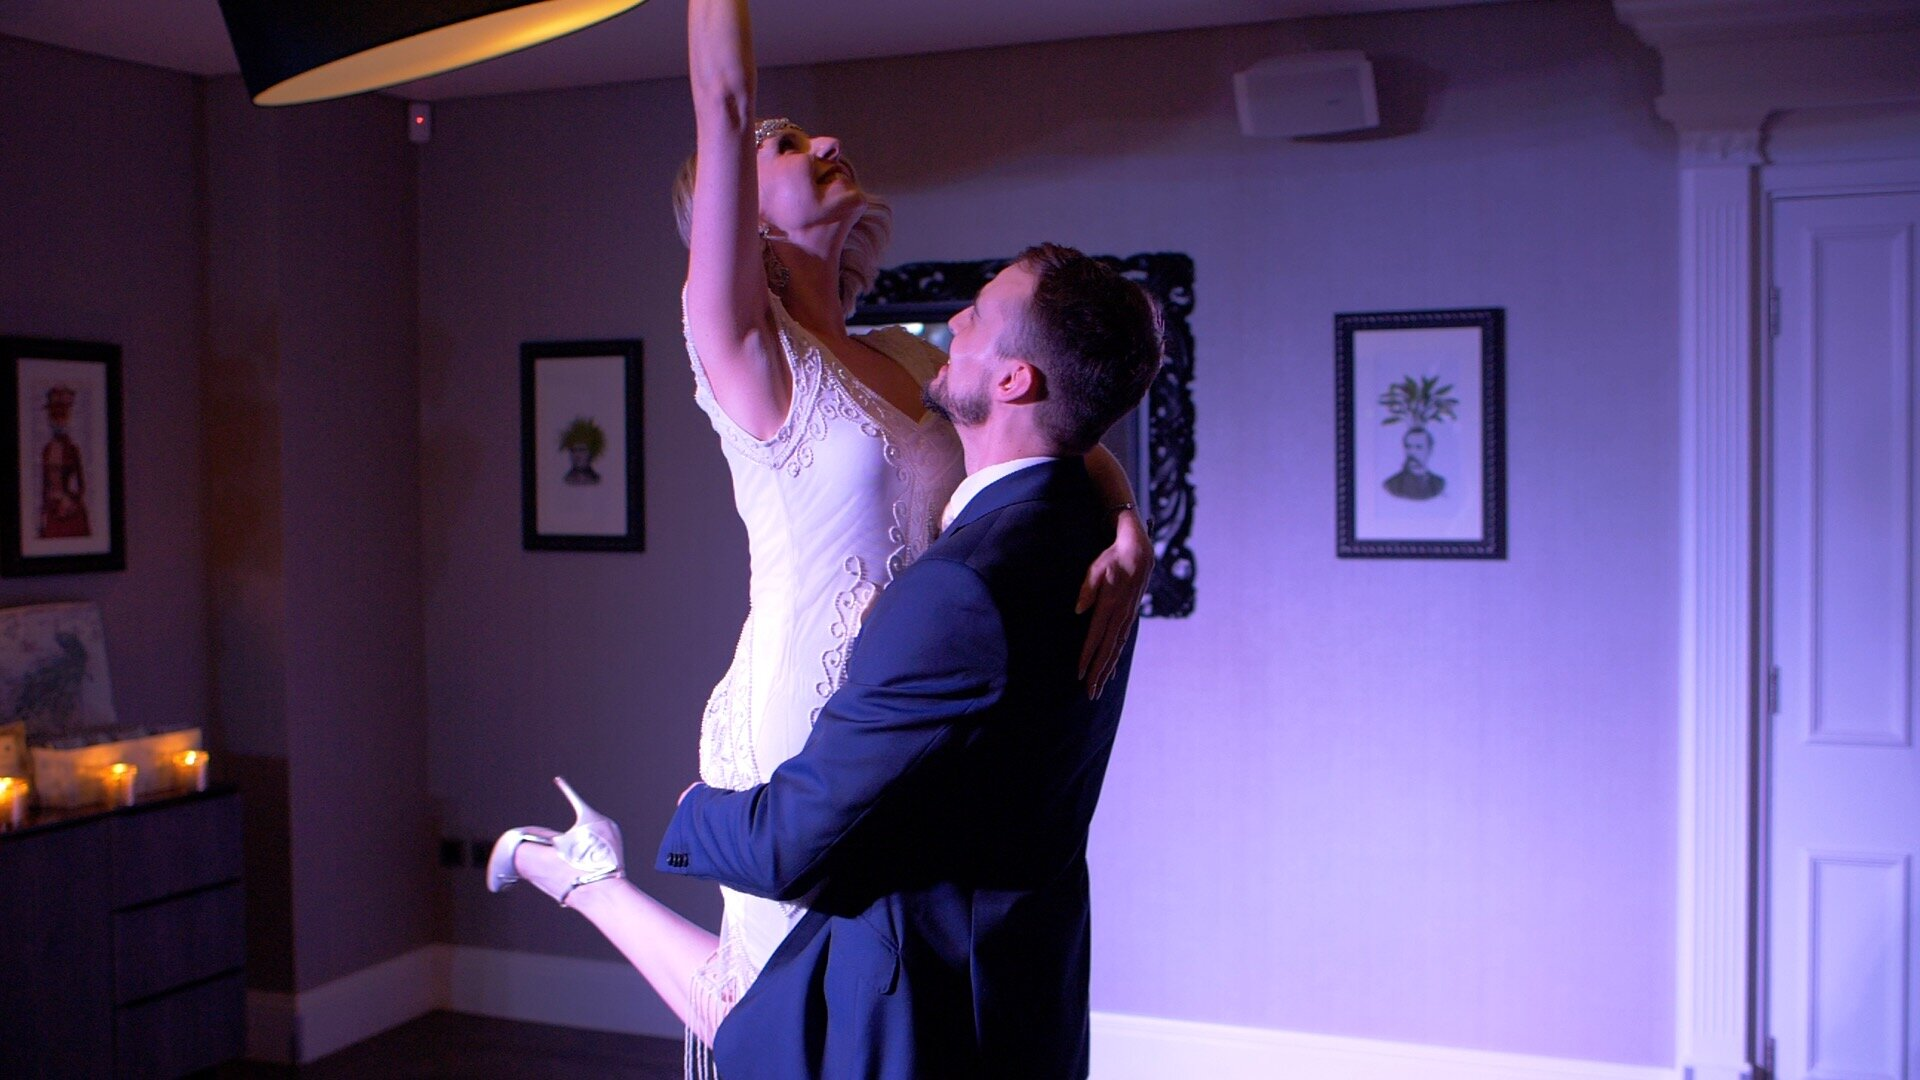 The bride and groom in the middle of their first dance. The groom is holding the bride up by her legs. The bride is gracefully lifting one of her arms in the air.